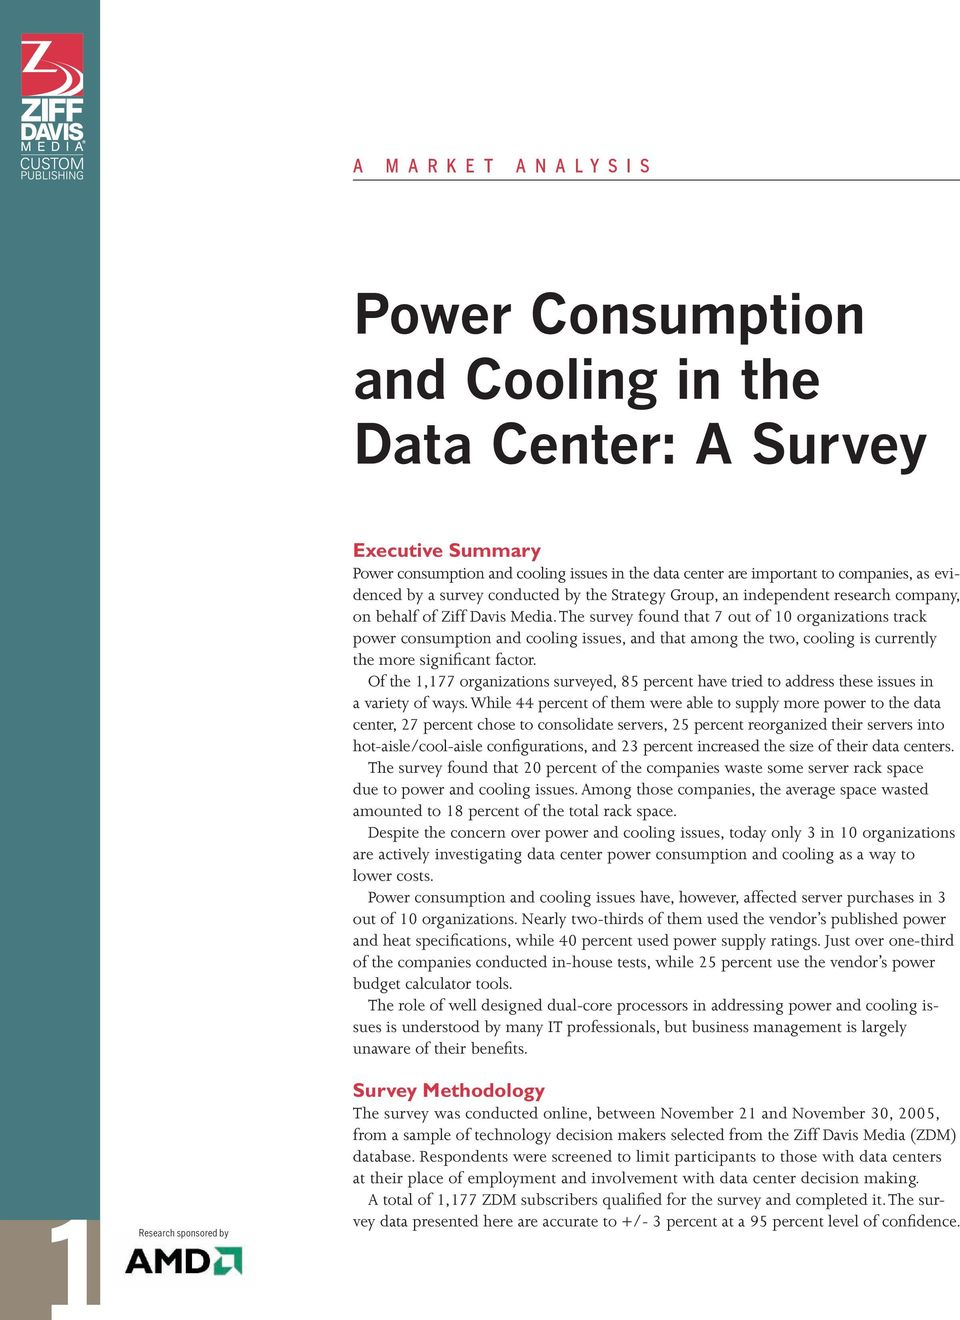 The survey found that 7 out of 10 organizations track power consumption and cooling issues, and that among the two, cooling is currently the more significant factor.